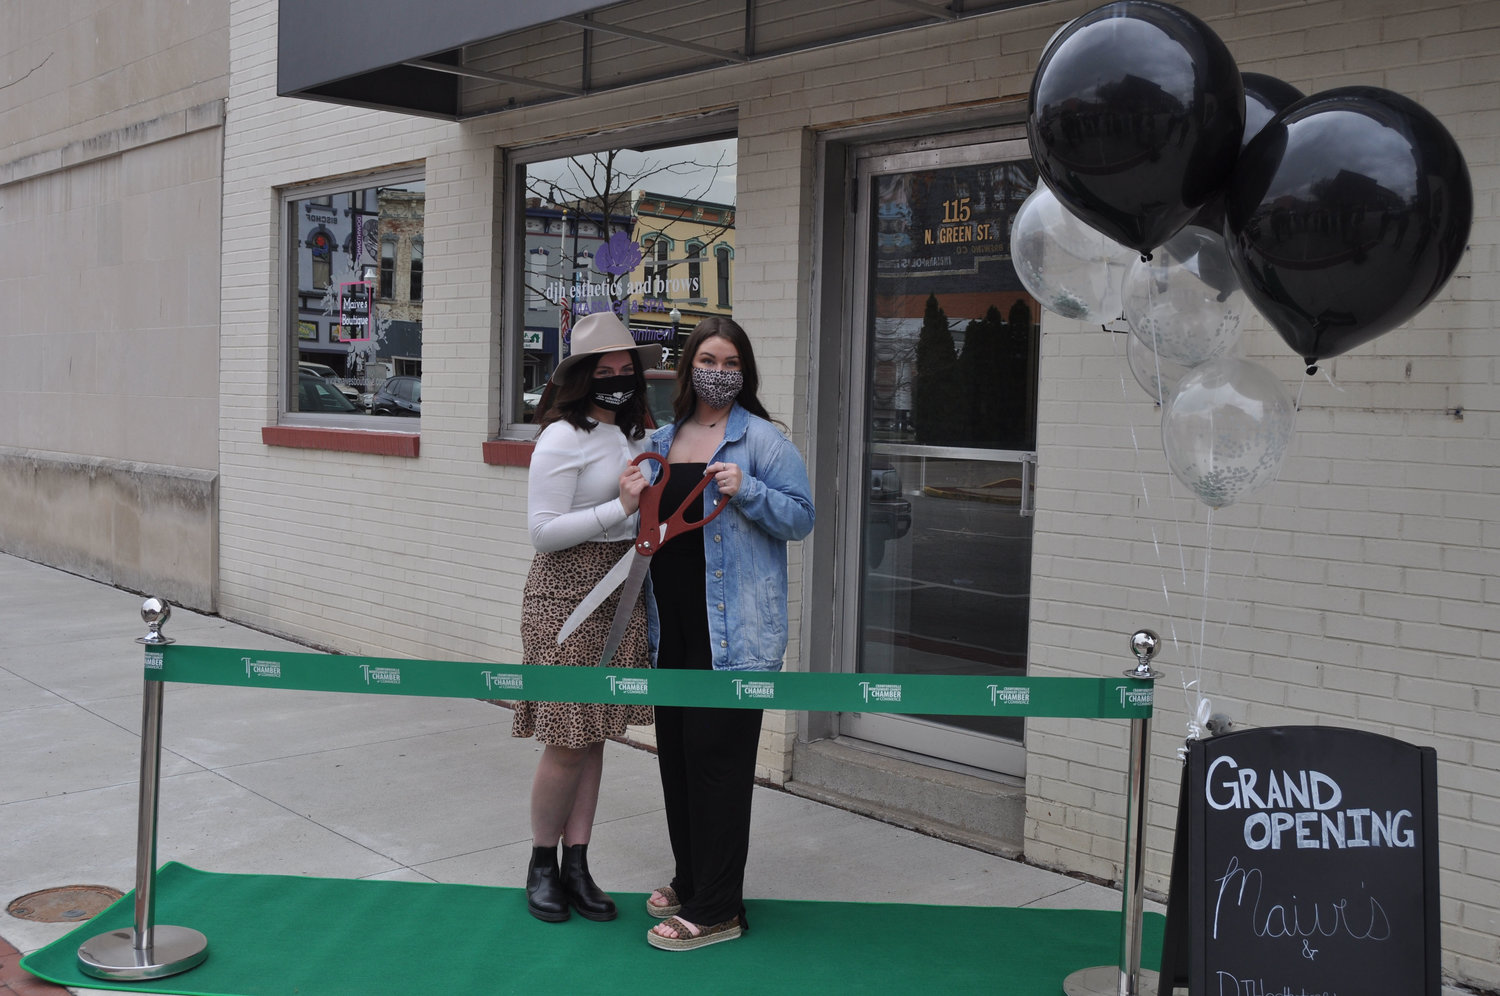 Lilly Wallace, left, and Demi Haas prepare to cut the ribbon of their businesses Maive's Boutique and djh esthetics and brows at the Weemickle Building in downtown Crawfordsville.